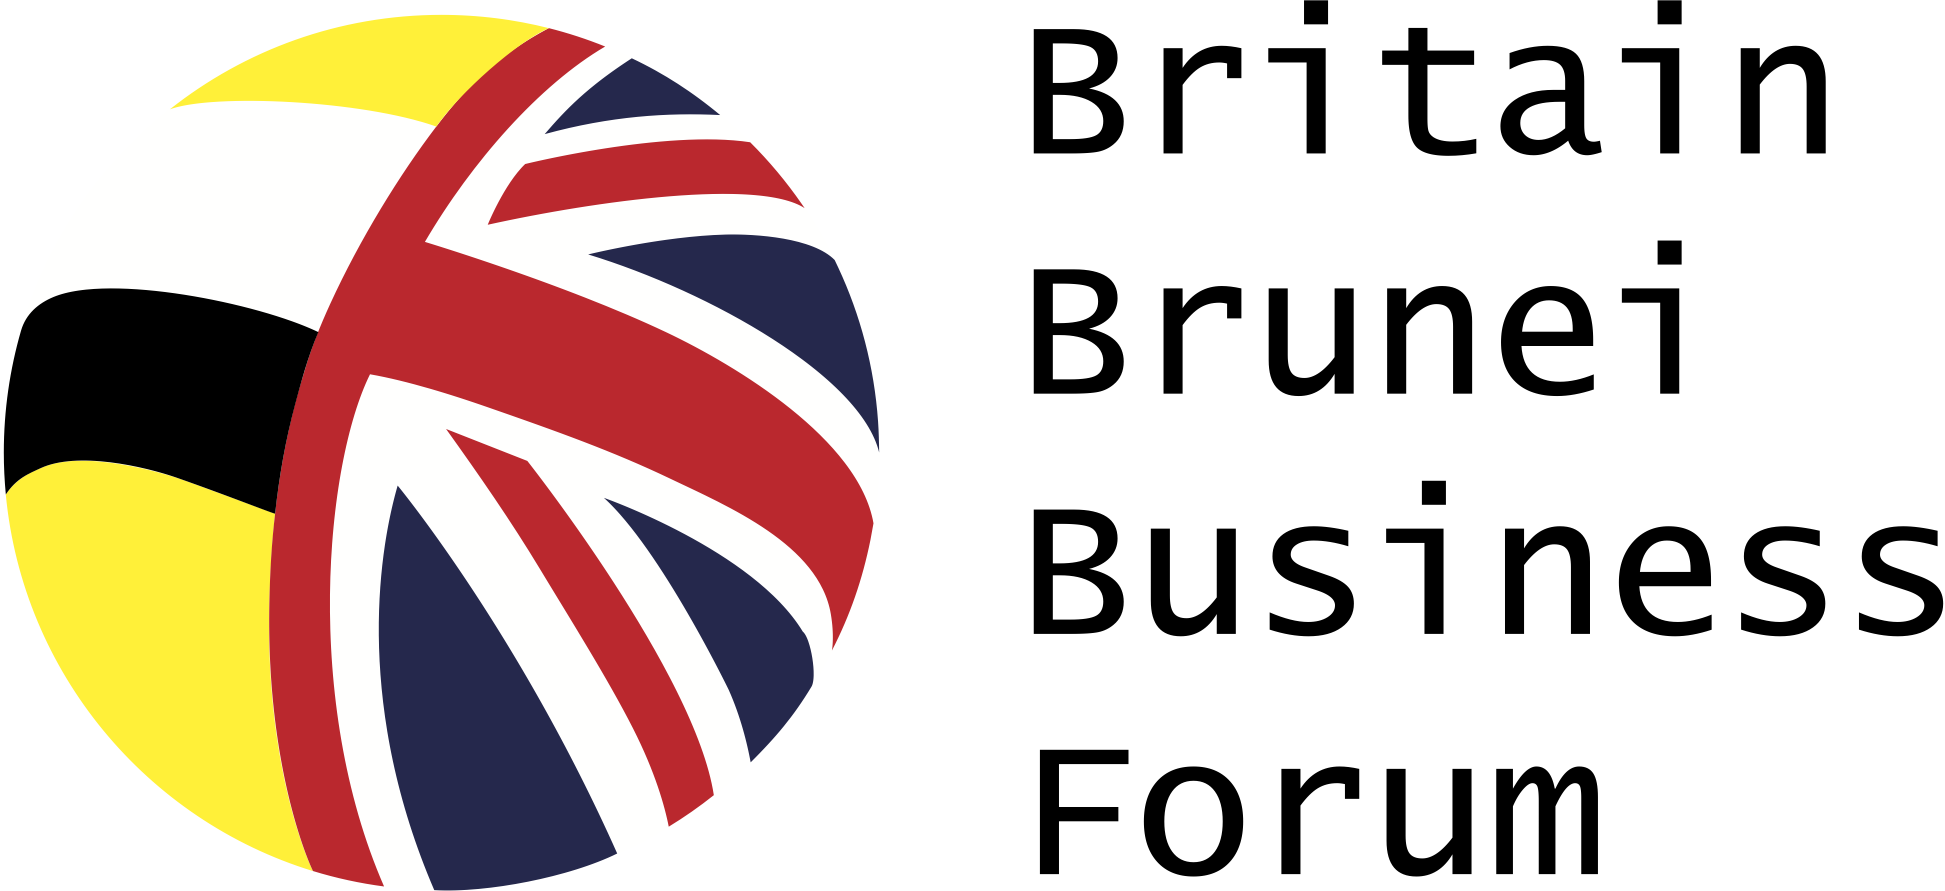 Britain Brunei Business Forum